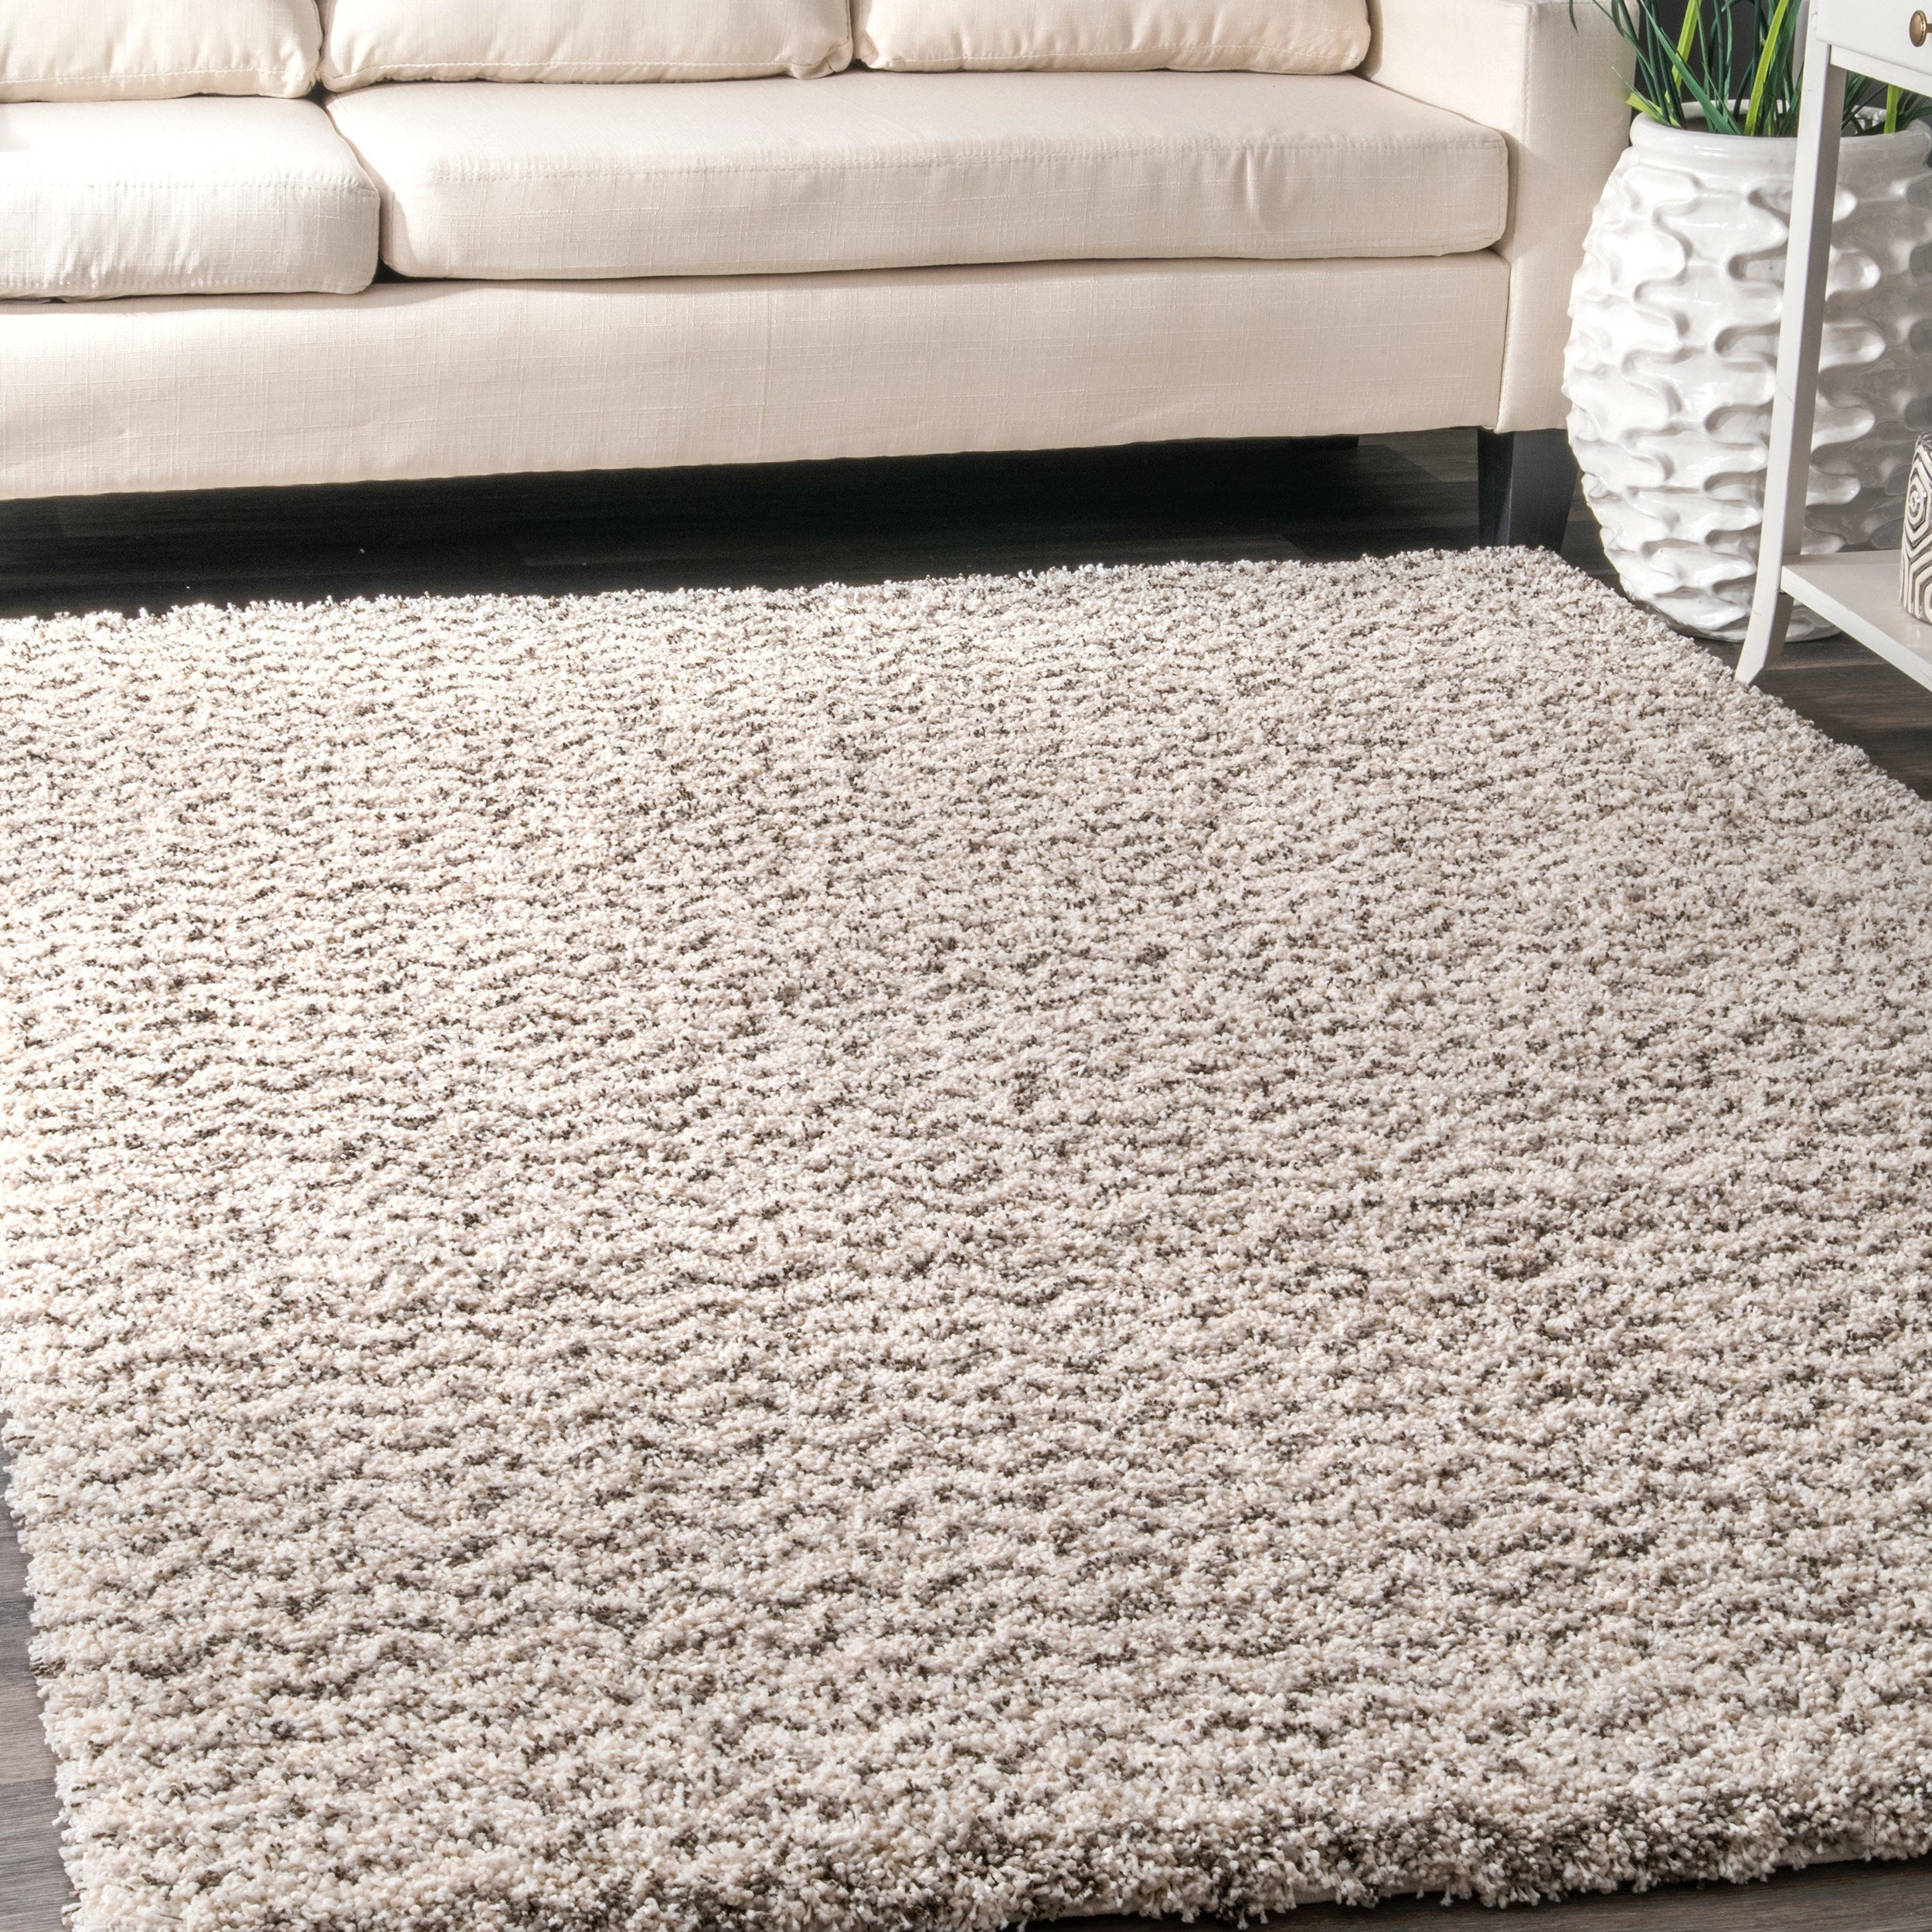 Nuloom Contemporary Moroccan Inspired Luxuries Soft And Plush Solid Chevron Shag Ivory Rug 4